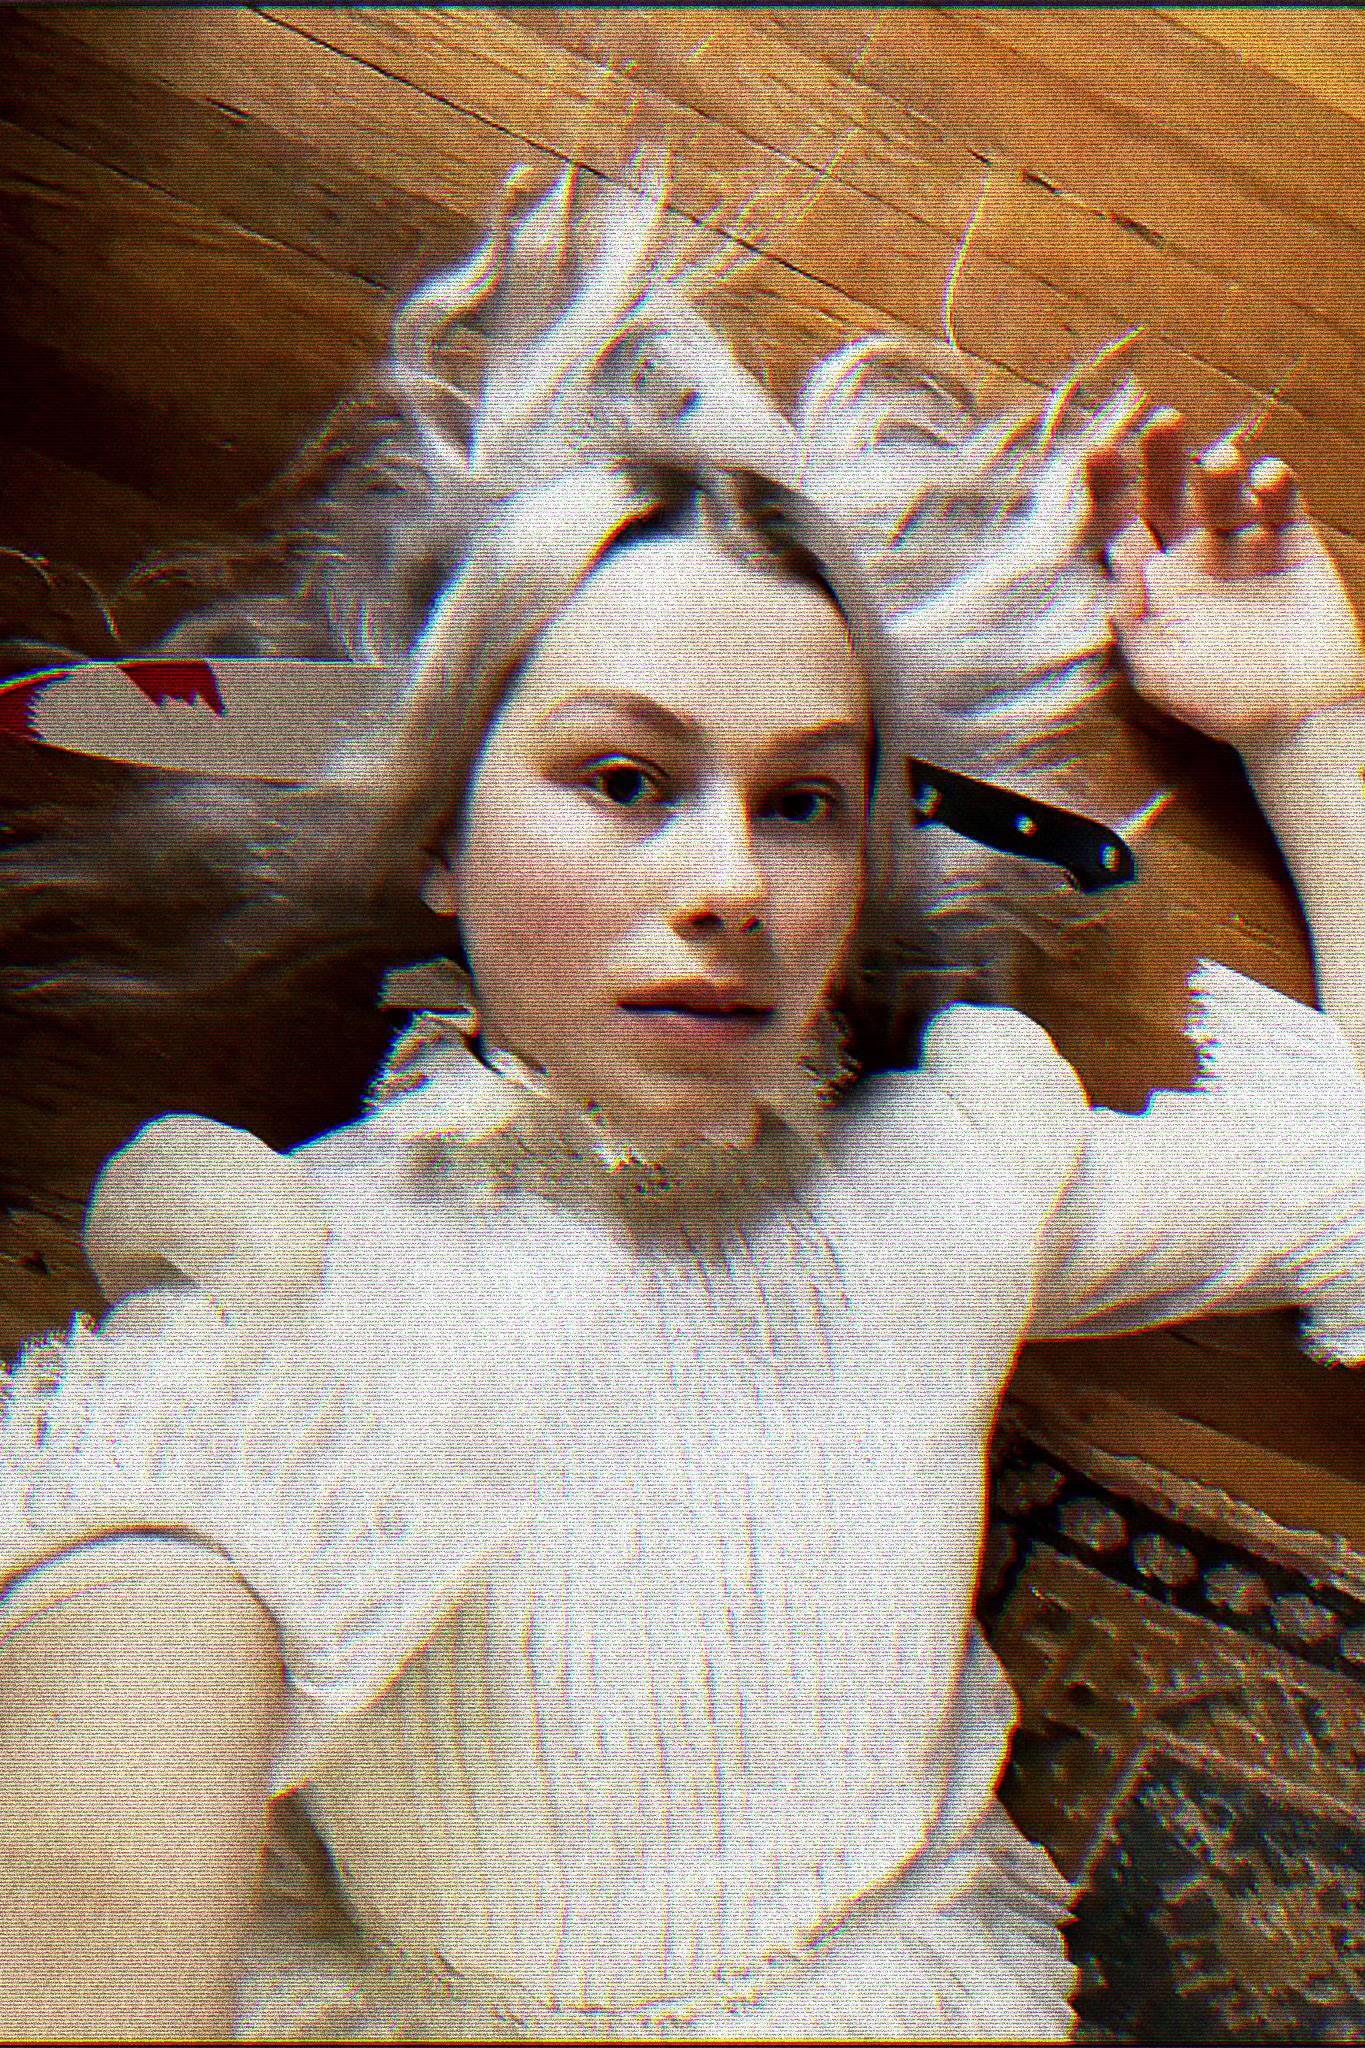 Phoebe Bridgers: Conversations With Friends